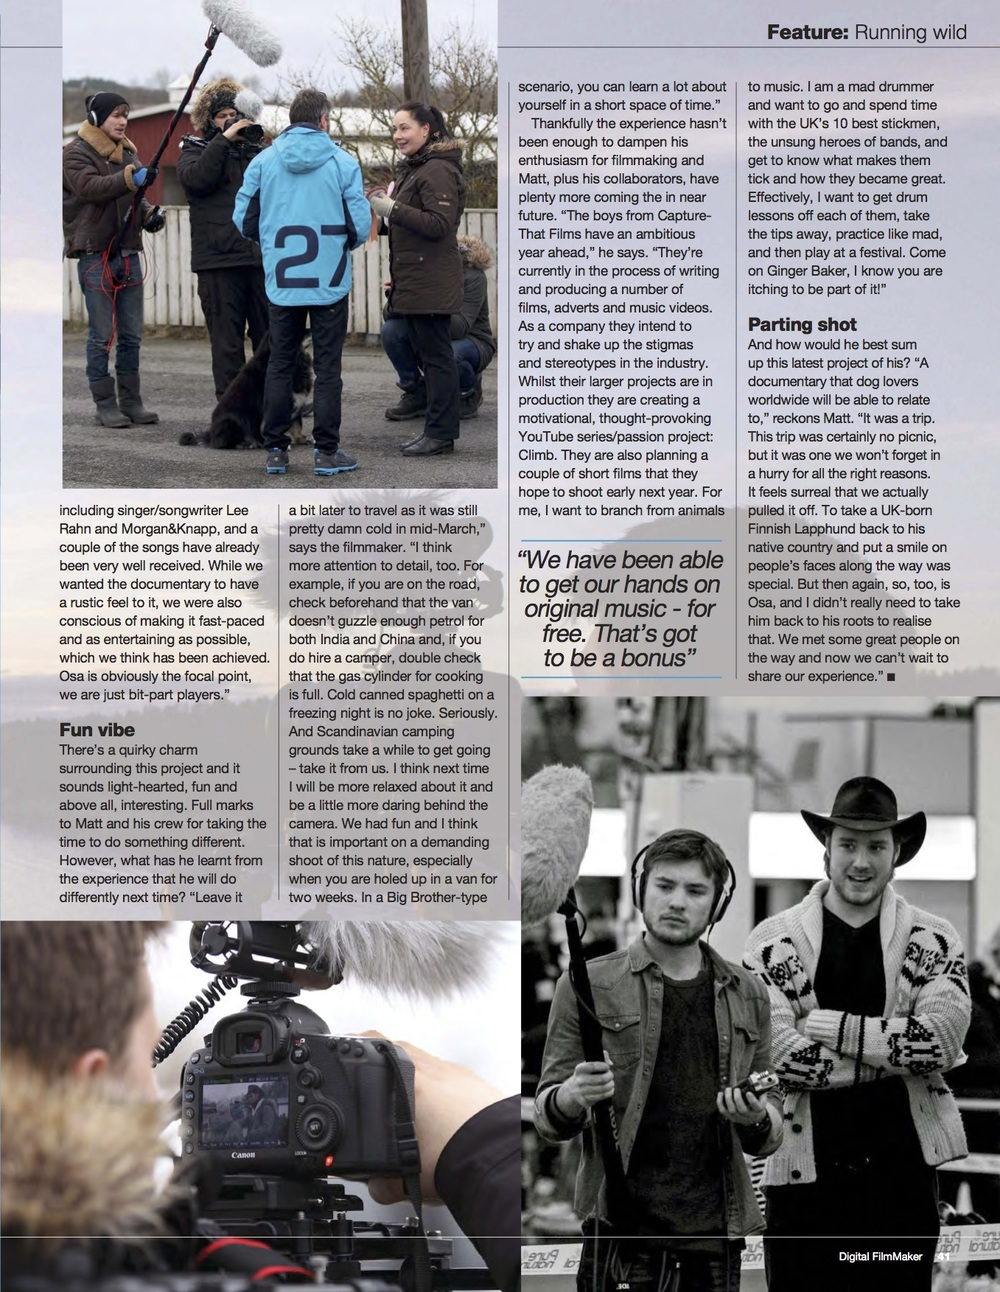 DigitalFilmMakerIssue3111111.jpg